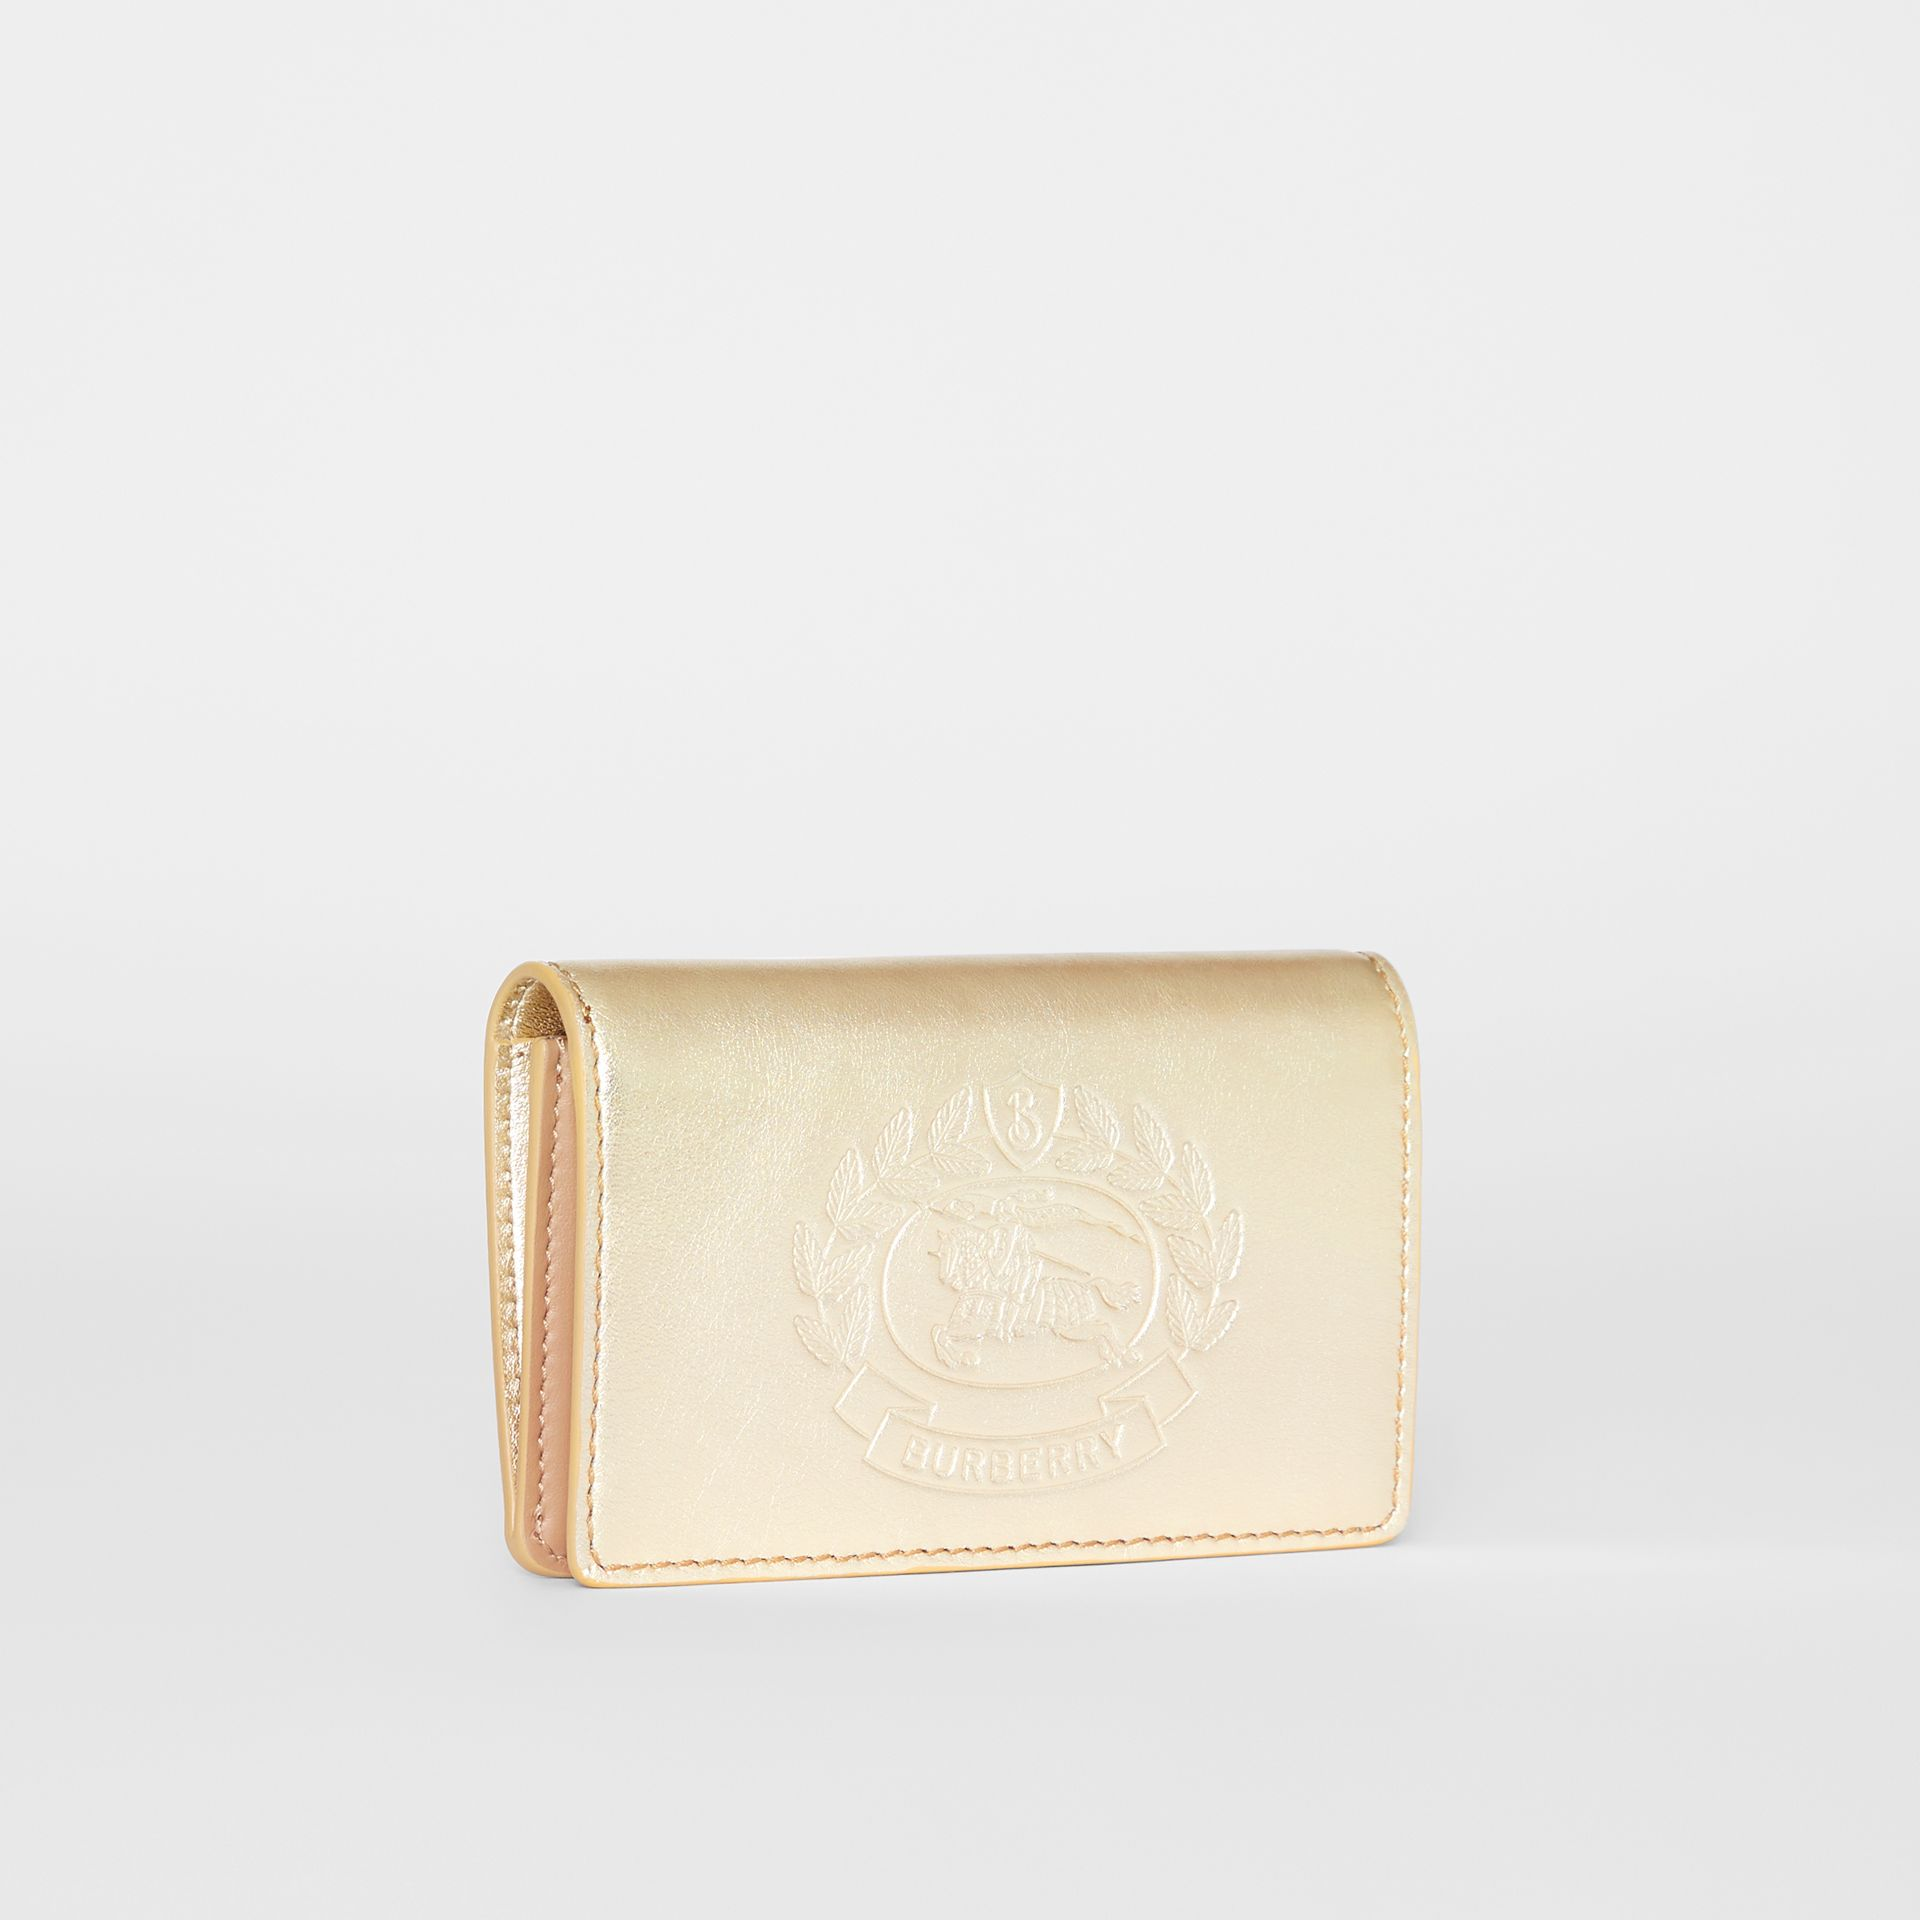 Small Embossed Crest Metallic Leather Wallet in Gold - Women | Burberry United Kingdom - gallery image 4